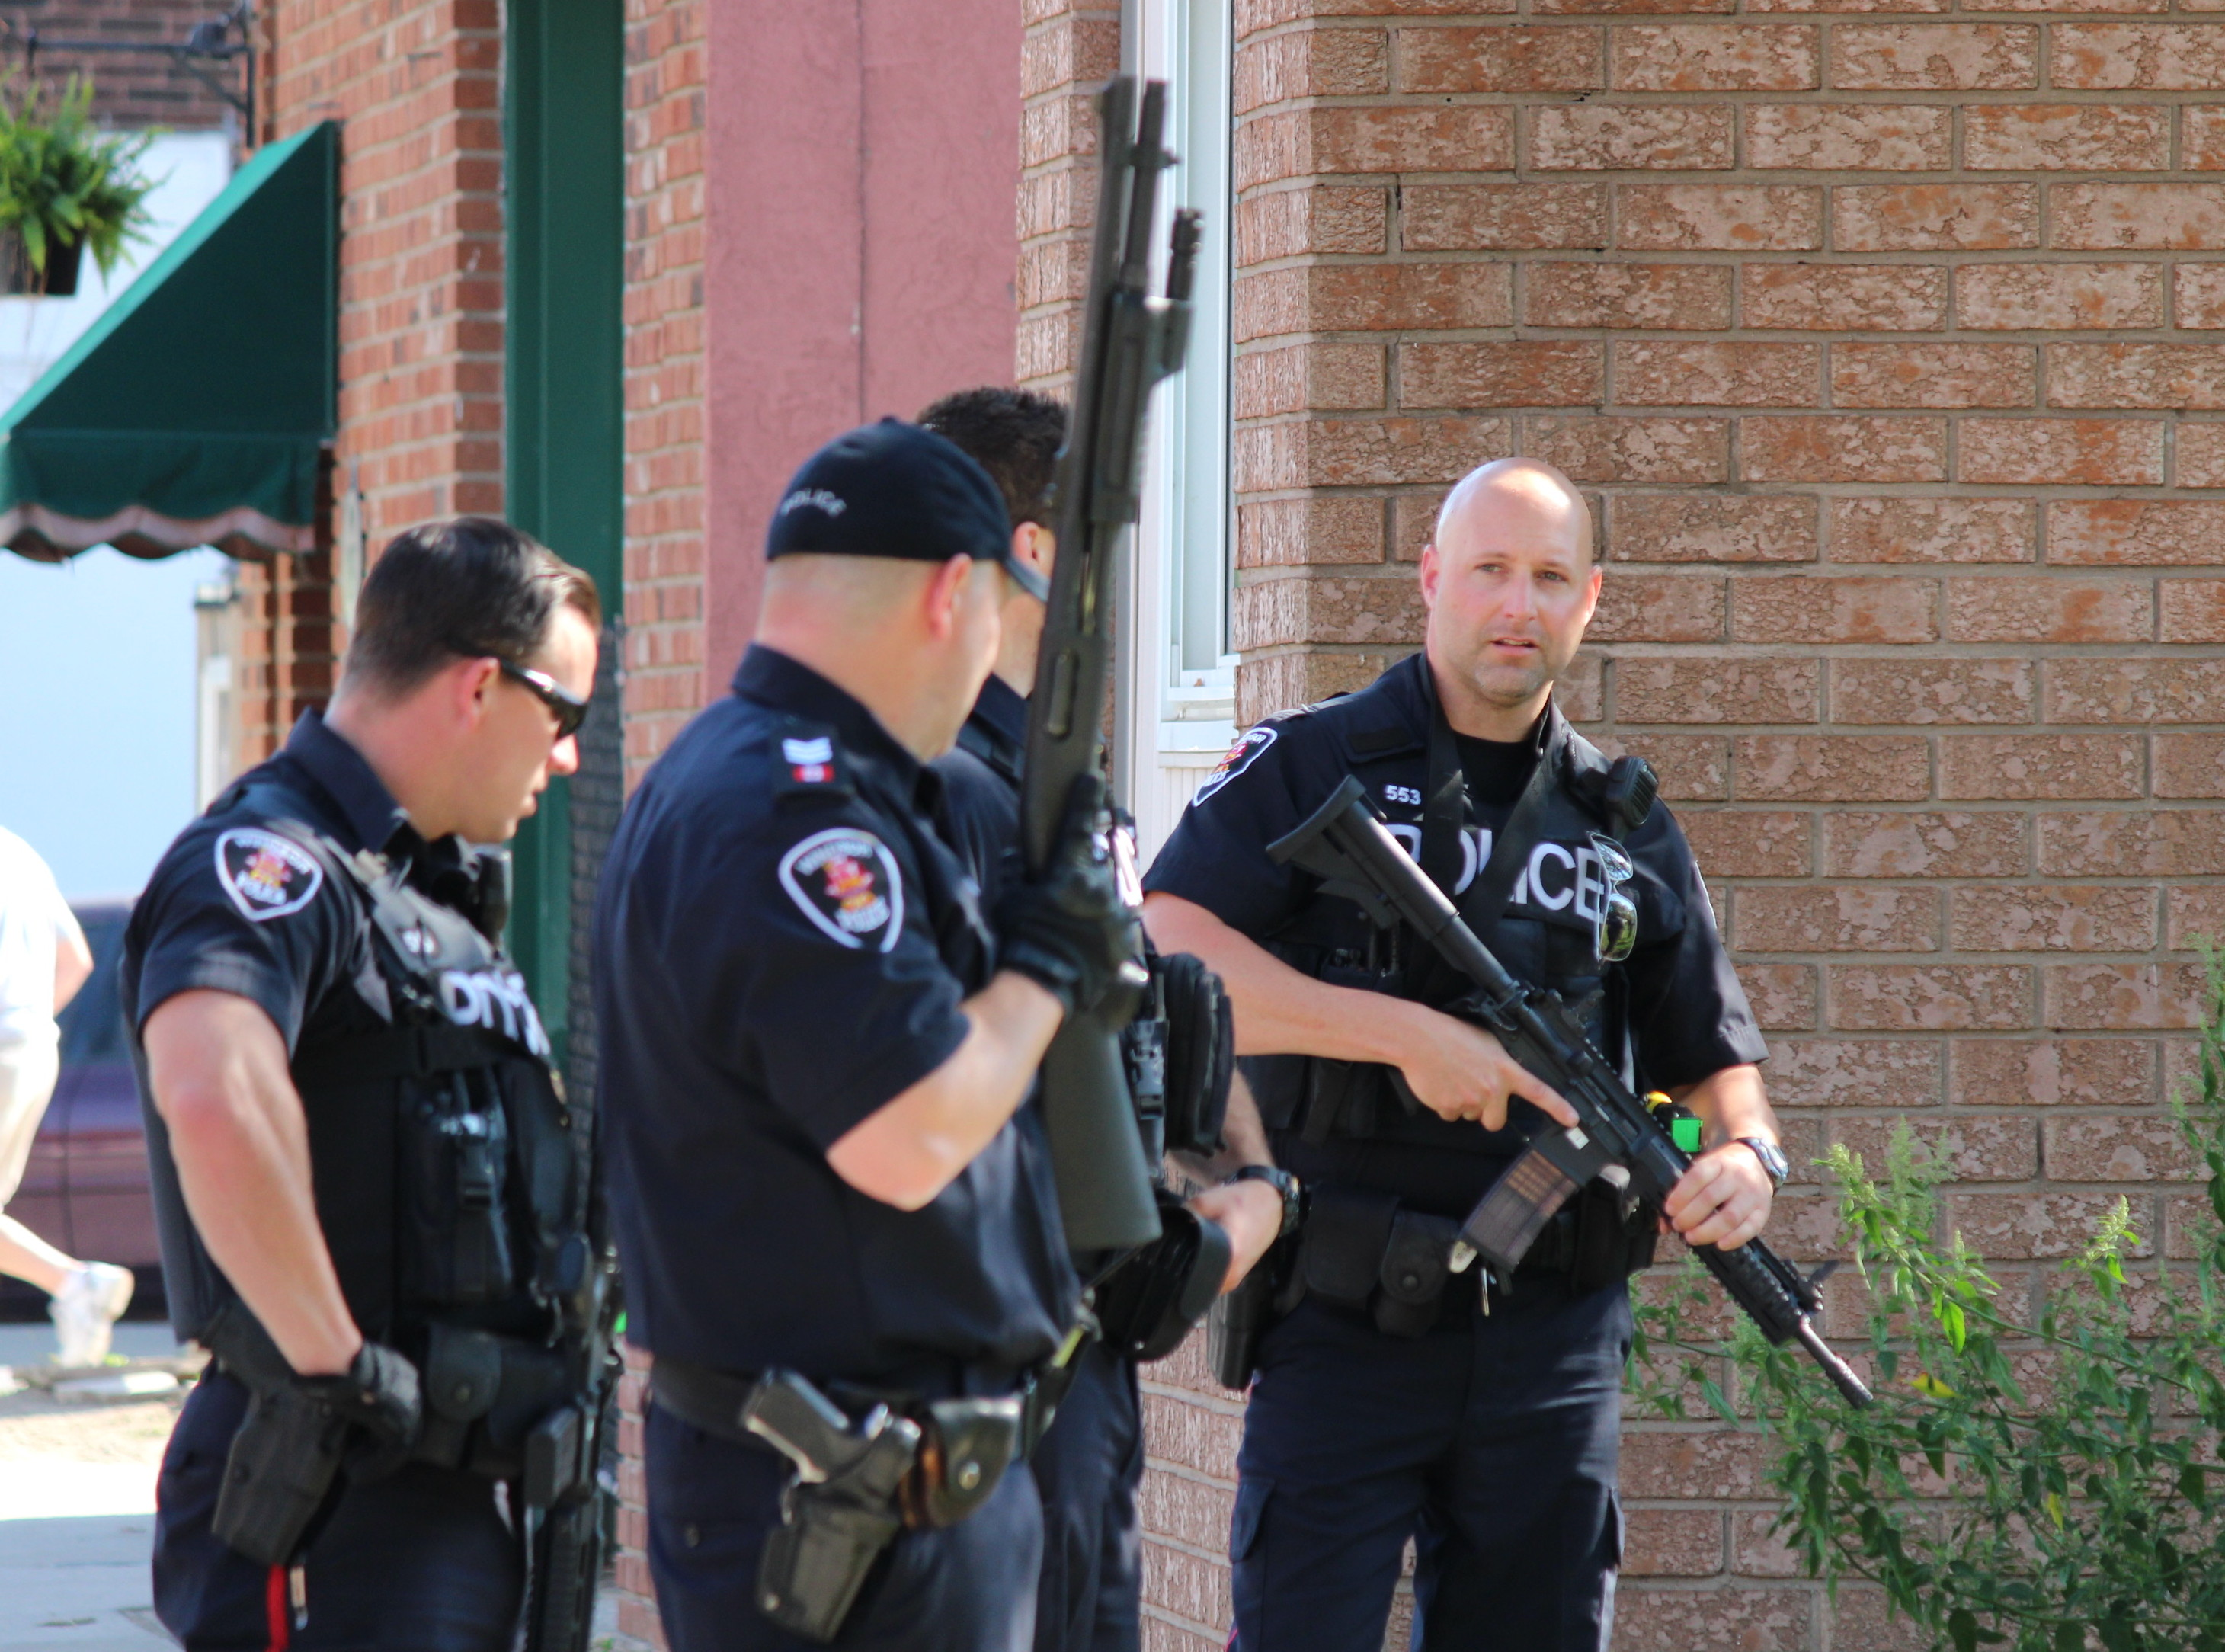 Windsor police are investigating after shots were fired in the 1000 block of Drouillard Rd. (Photo by Jason Viau)